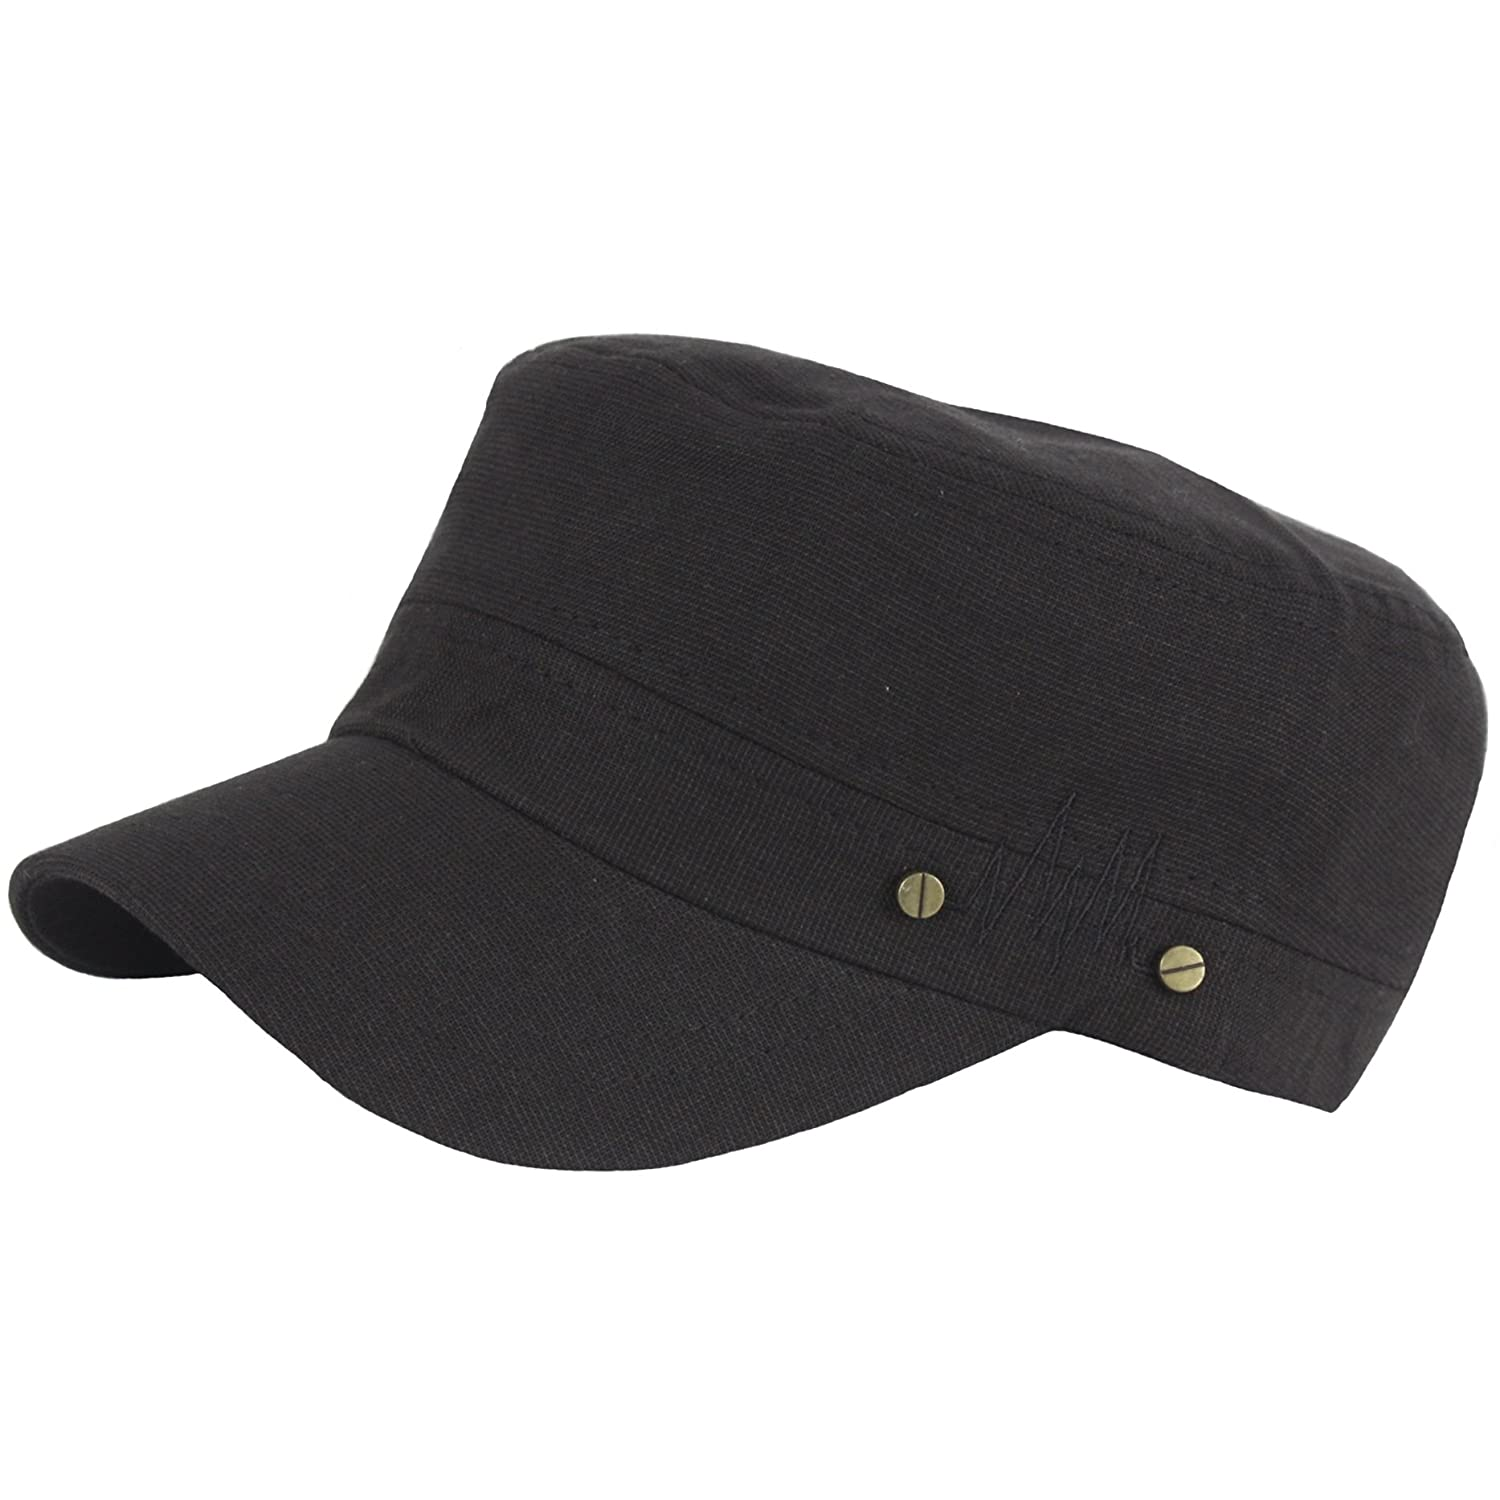 RaOn A163 New Pre-Curved Spread Bolt Point Frequency Club Army Cap Cadet Military Hat